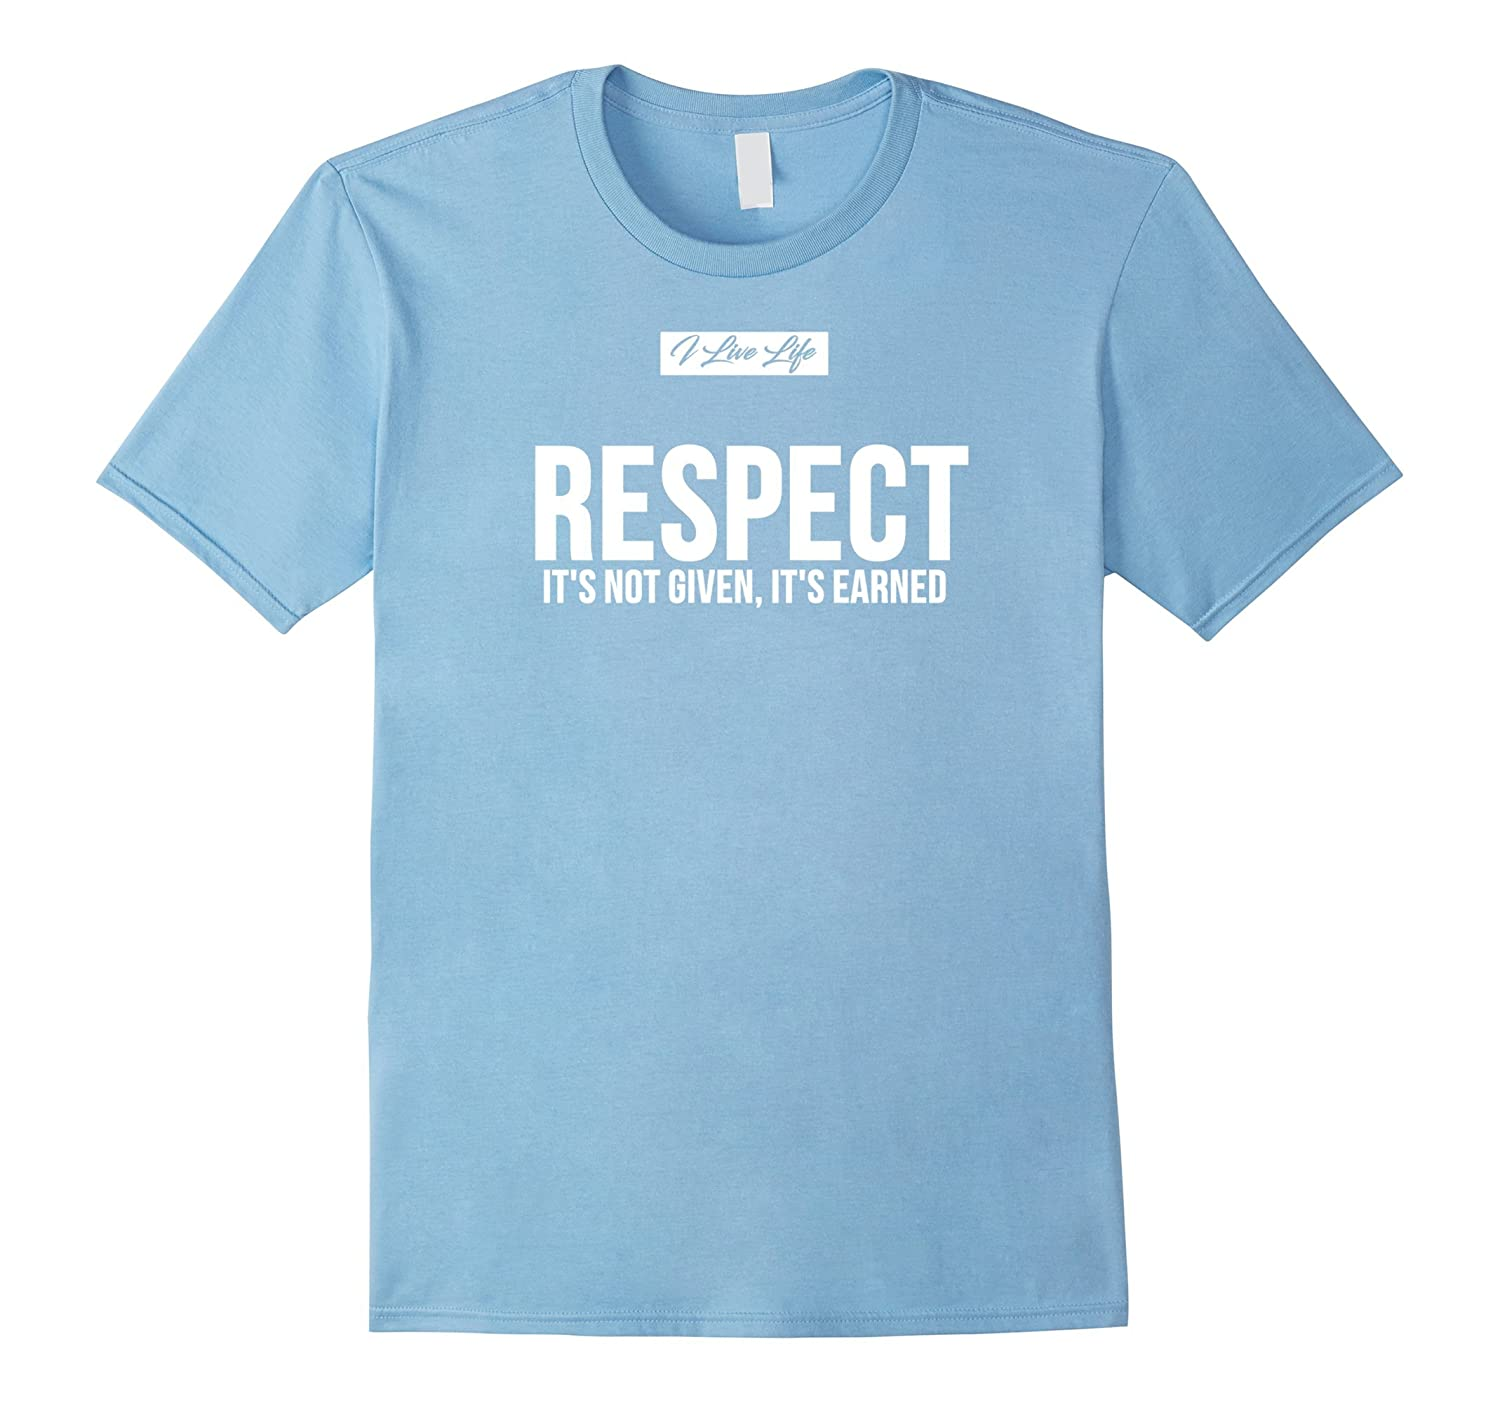 I Live Life Original Respect It's Not Given It's Earned Tee